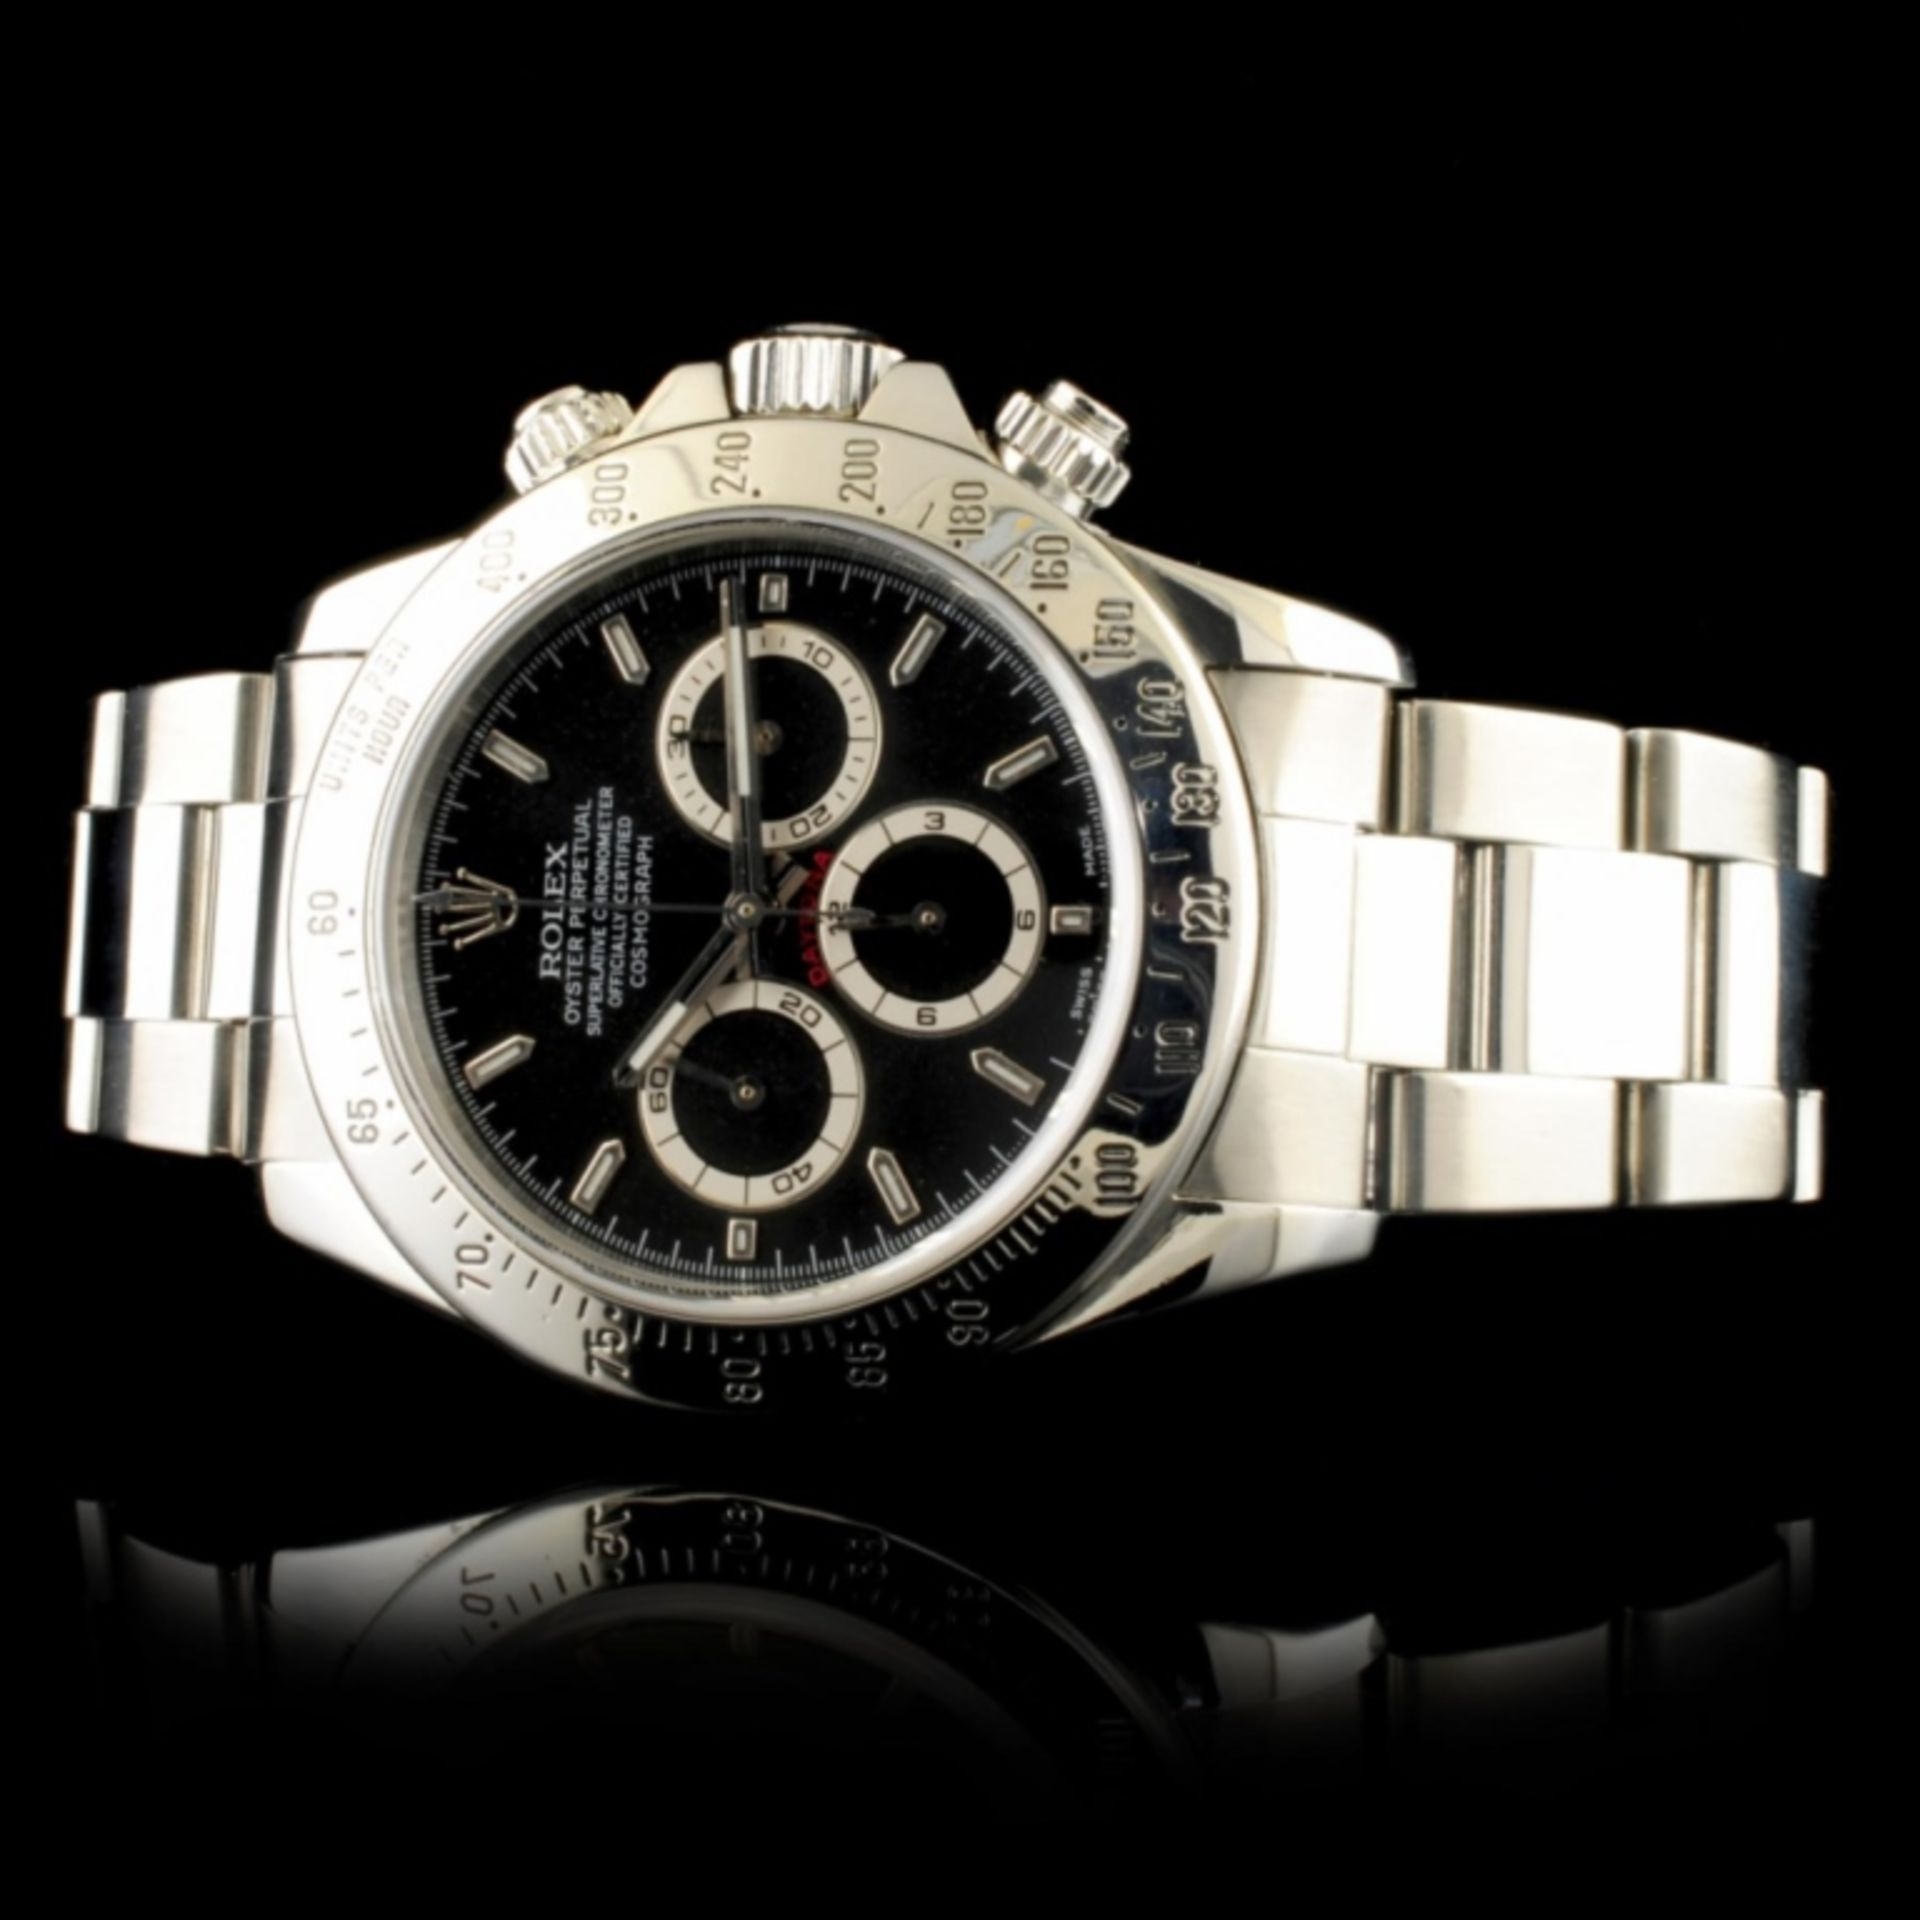 Rolex DAYTONA Cosmograph 16520 40MM Wristwatch - Image 2 of 9